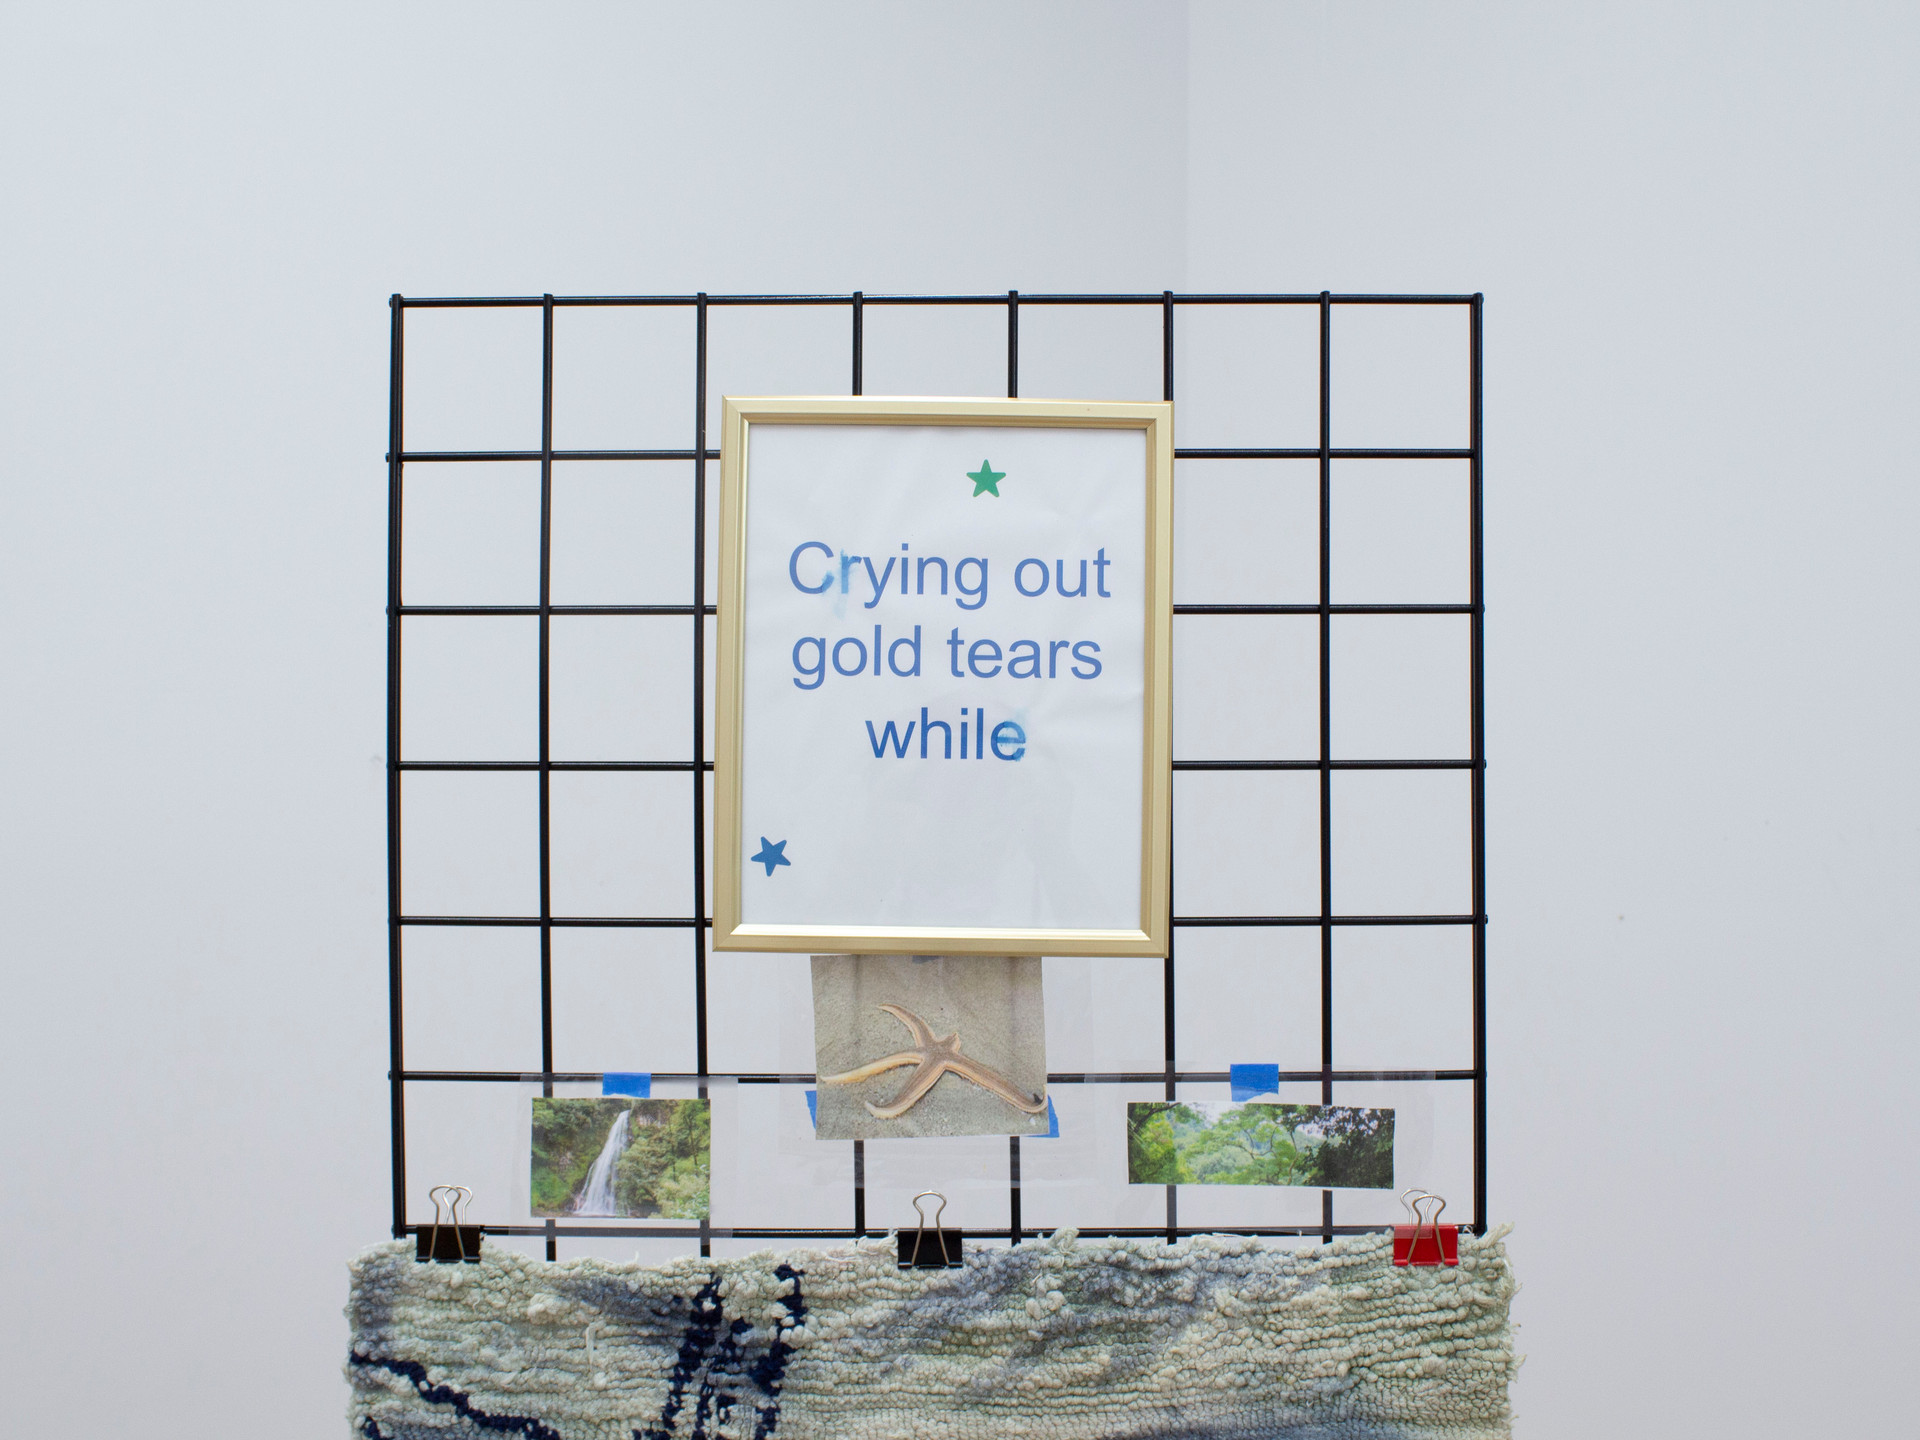 crying out gold tears while imagining what could've been